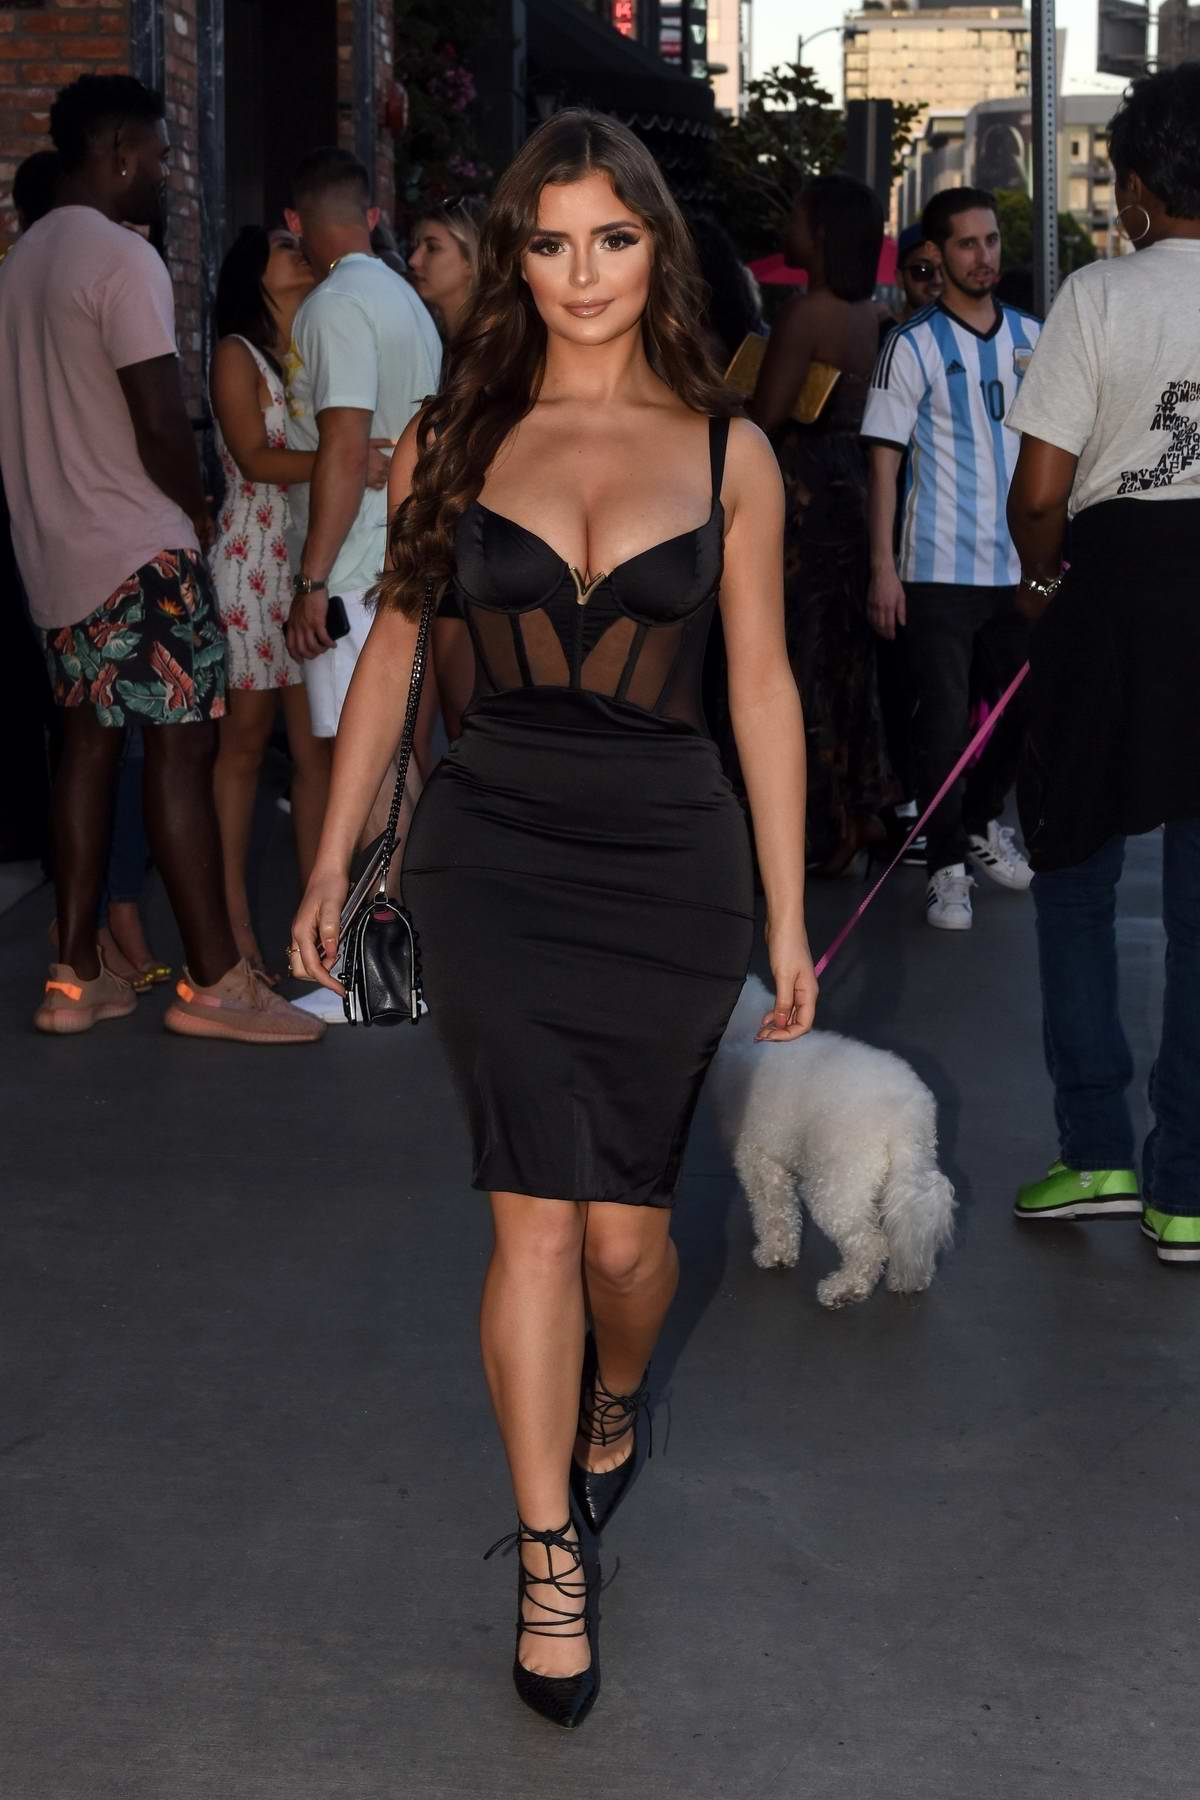 Demi Rose stuns in a plunging black dress as she arrives for a dinner event at TAO in Los Angeles